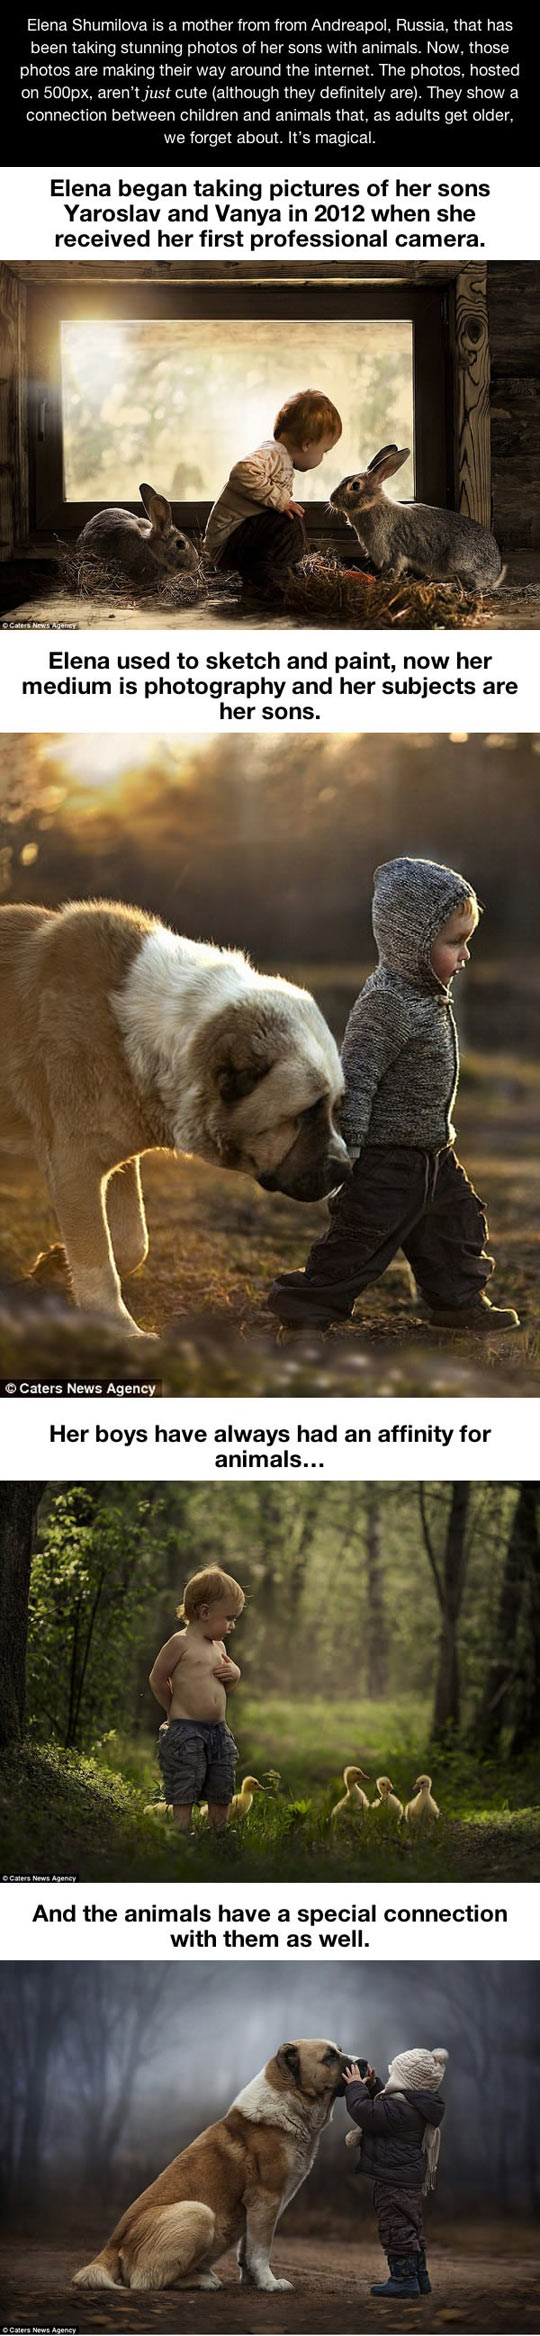 Connection between children and animals...